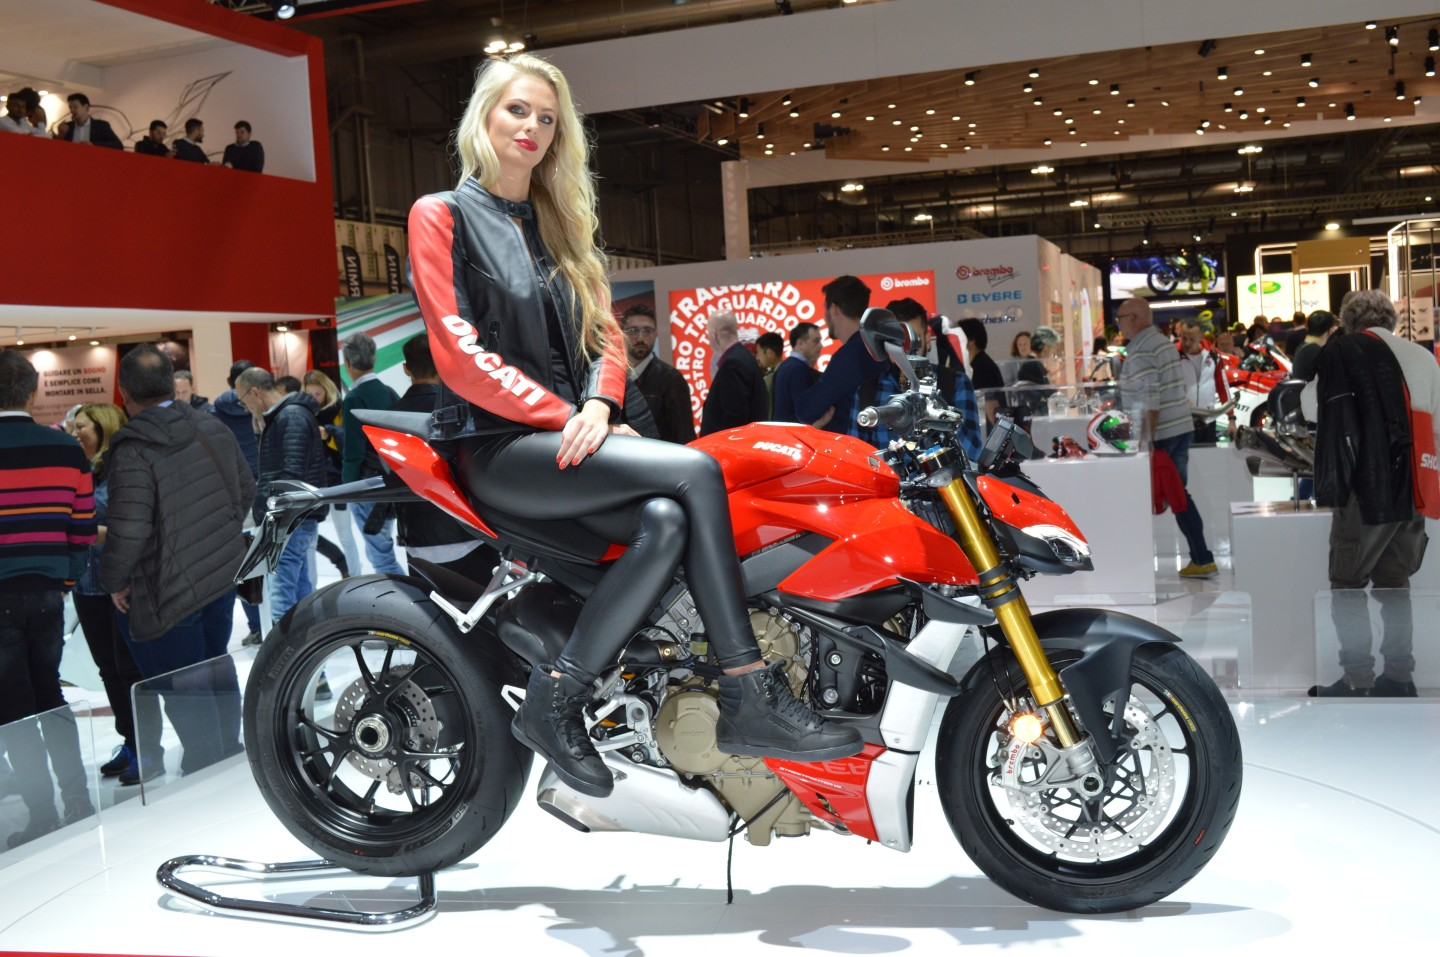 The 2020 Ducati Streetfighter V4 stuns with 208 hp in standard trim, expandable up to 220 with the Panigale's trickiest kits